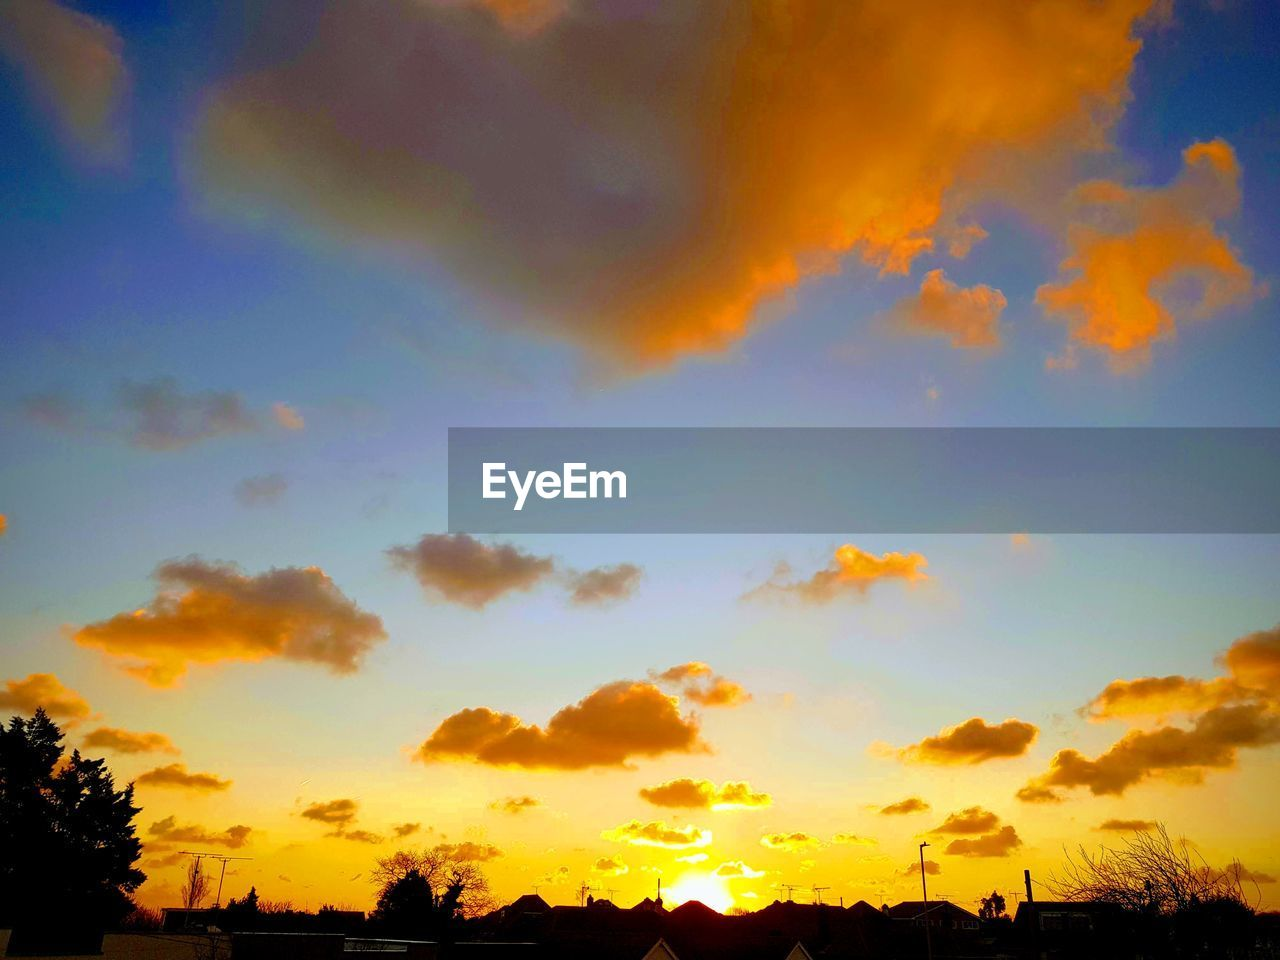 sky, cloud - sky, sunset, beauty in nature, orange color, scenics - nature, tranquility, tranquil scene, silhouette, no people, nature, low angle view, tree, outdoors, idyllic, plant, dramatic sky, environment, multi colored, romantic sky